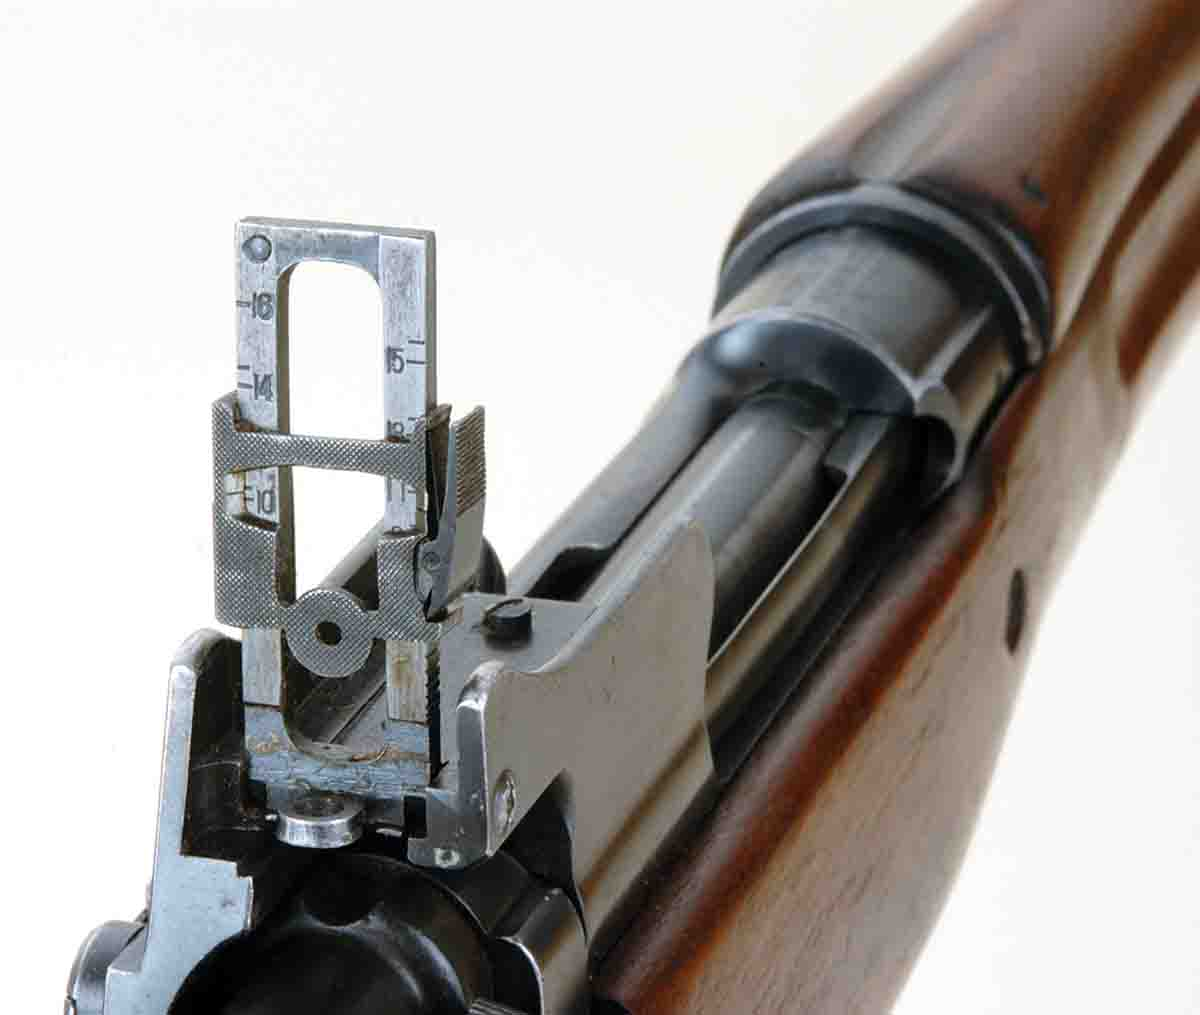 For rear sights, Model 1917s had a unique two- aperture rear. One aperture was used with the ladder lowered for a battle zero. When the sight ladder was raised, a second aperture came into play with elevation graduations to 1,800 yards.